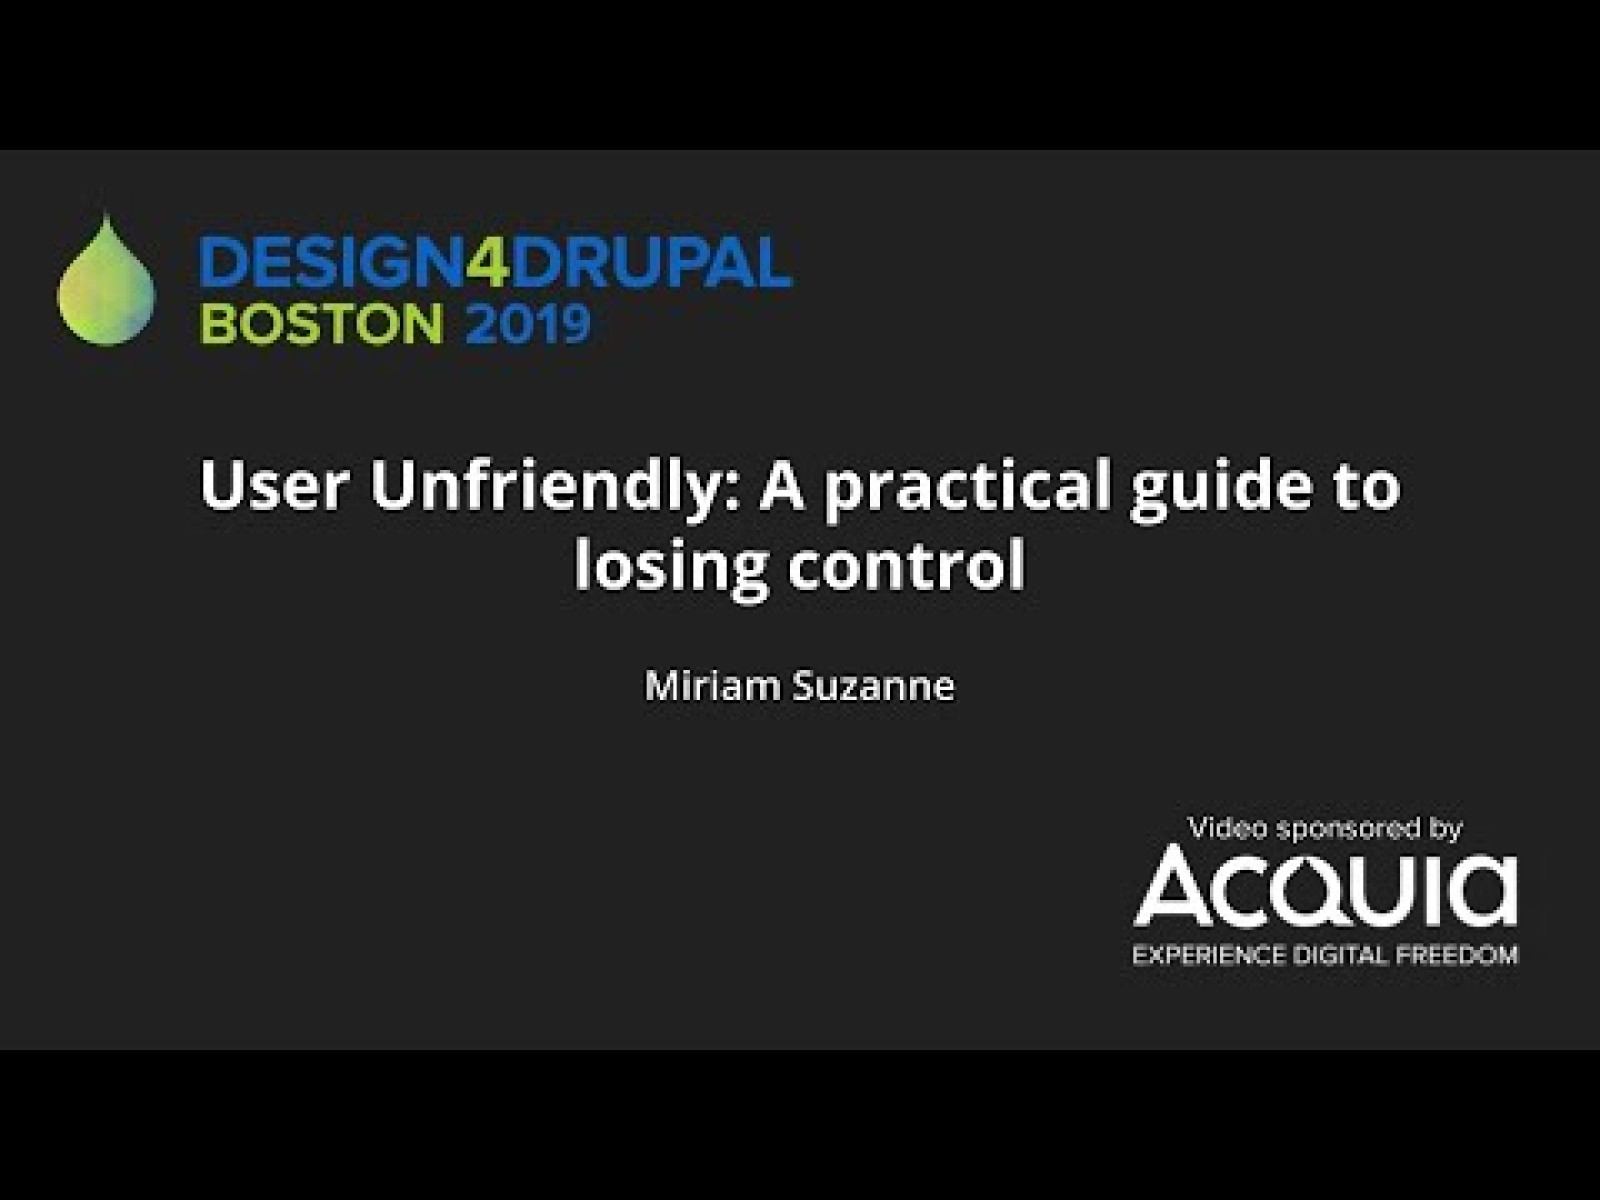 [Keynote] User Unfriendly: A practical guide to losing control